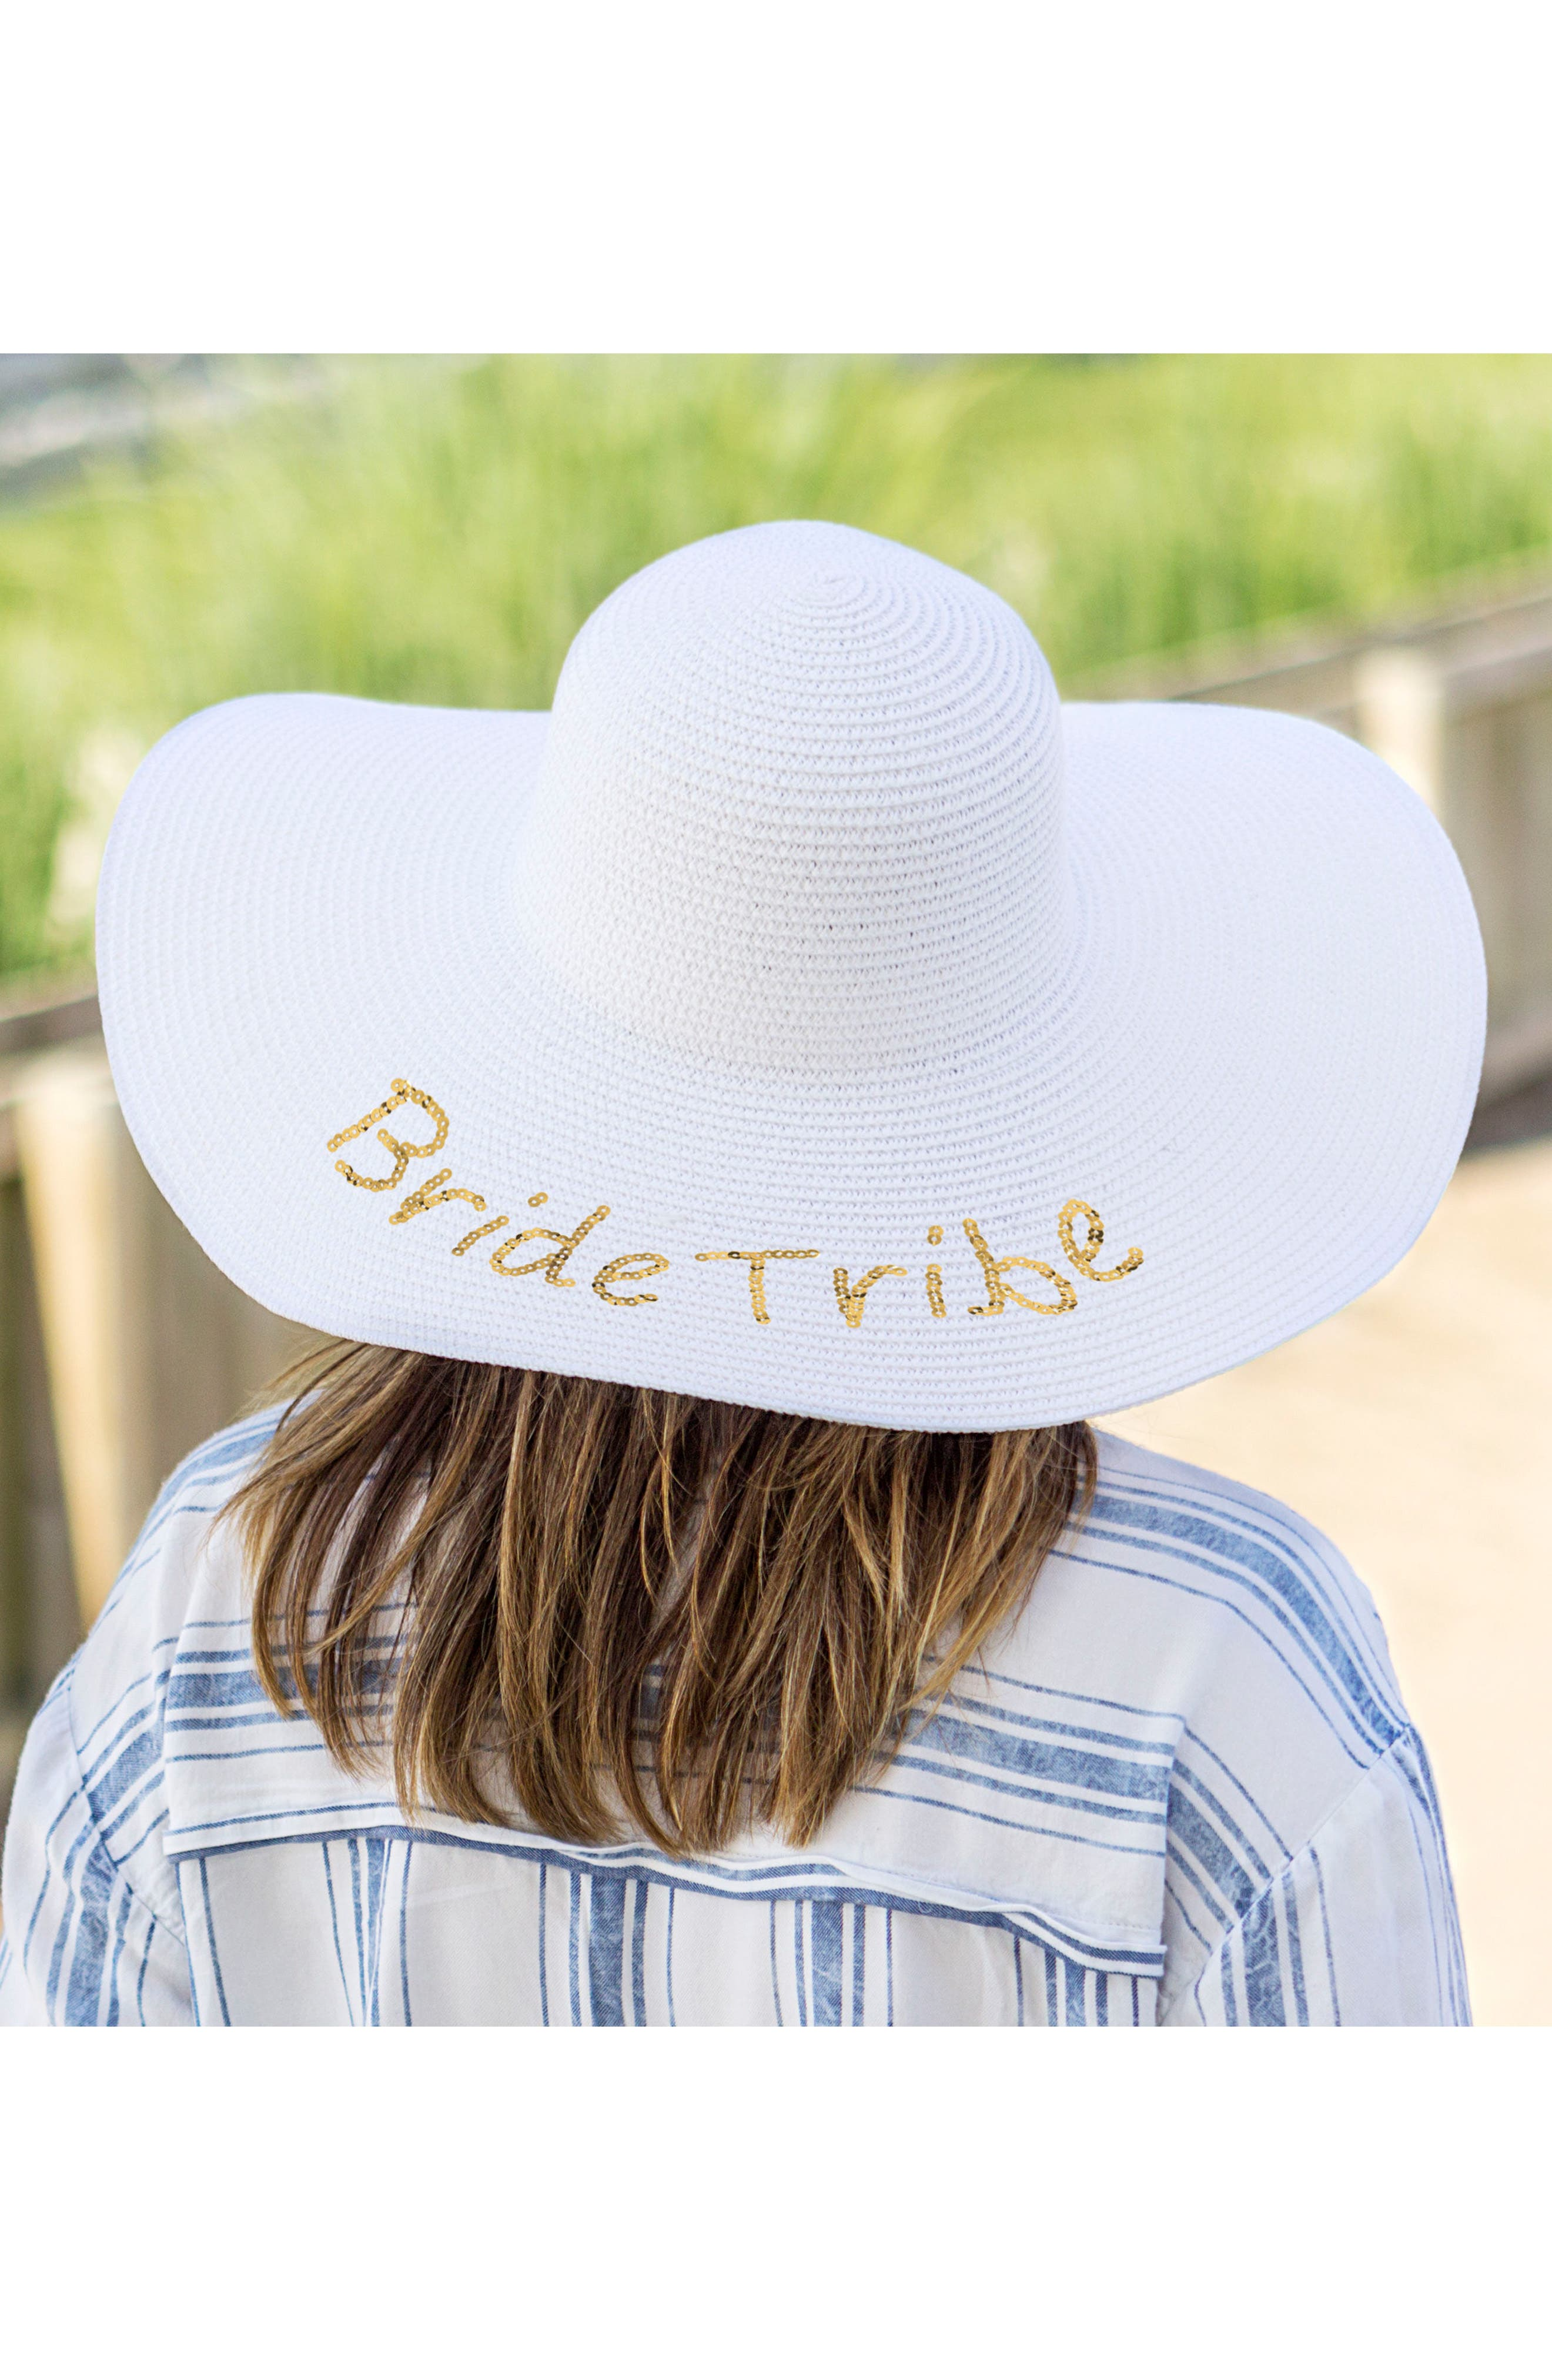 Sequin Bride Tribe Straw Hat,                             Alternate thumbnail 4, color,                             Gold